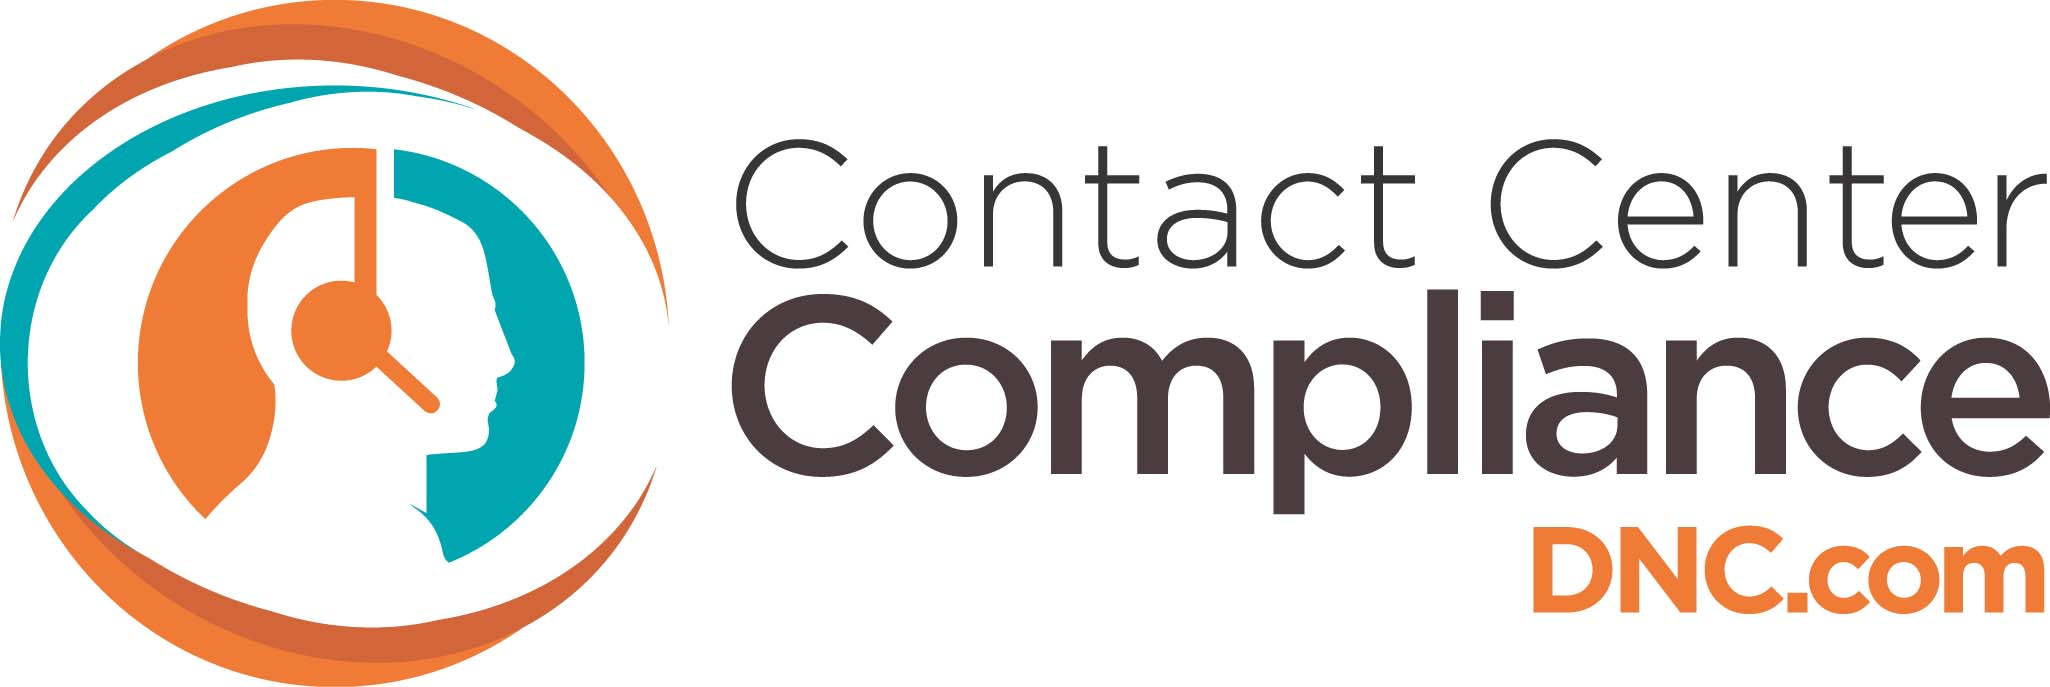 Contact Center Compliance logo